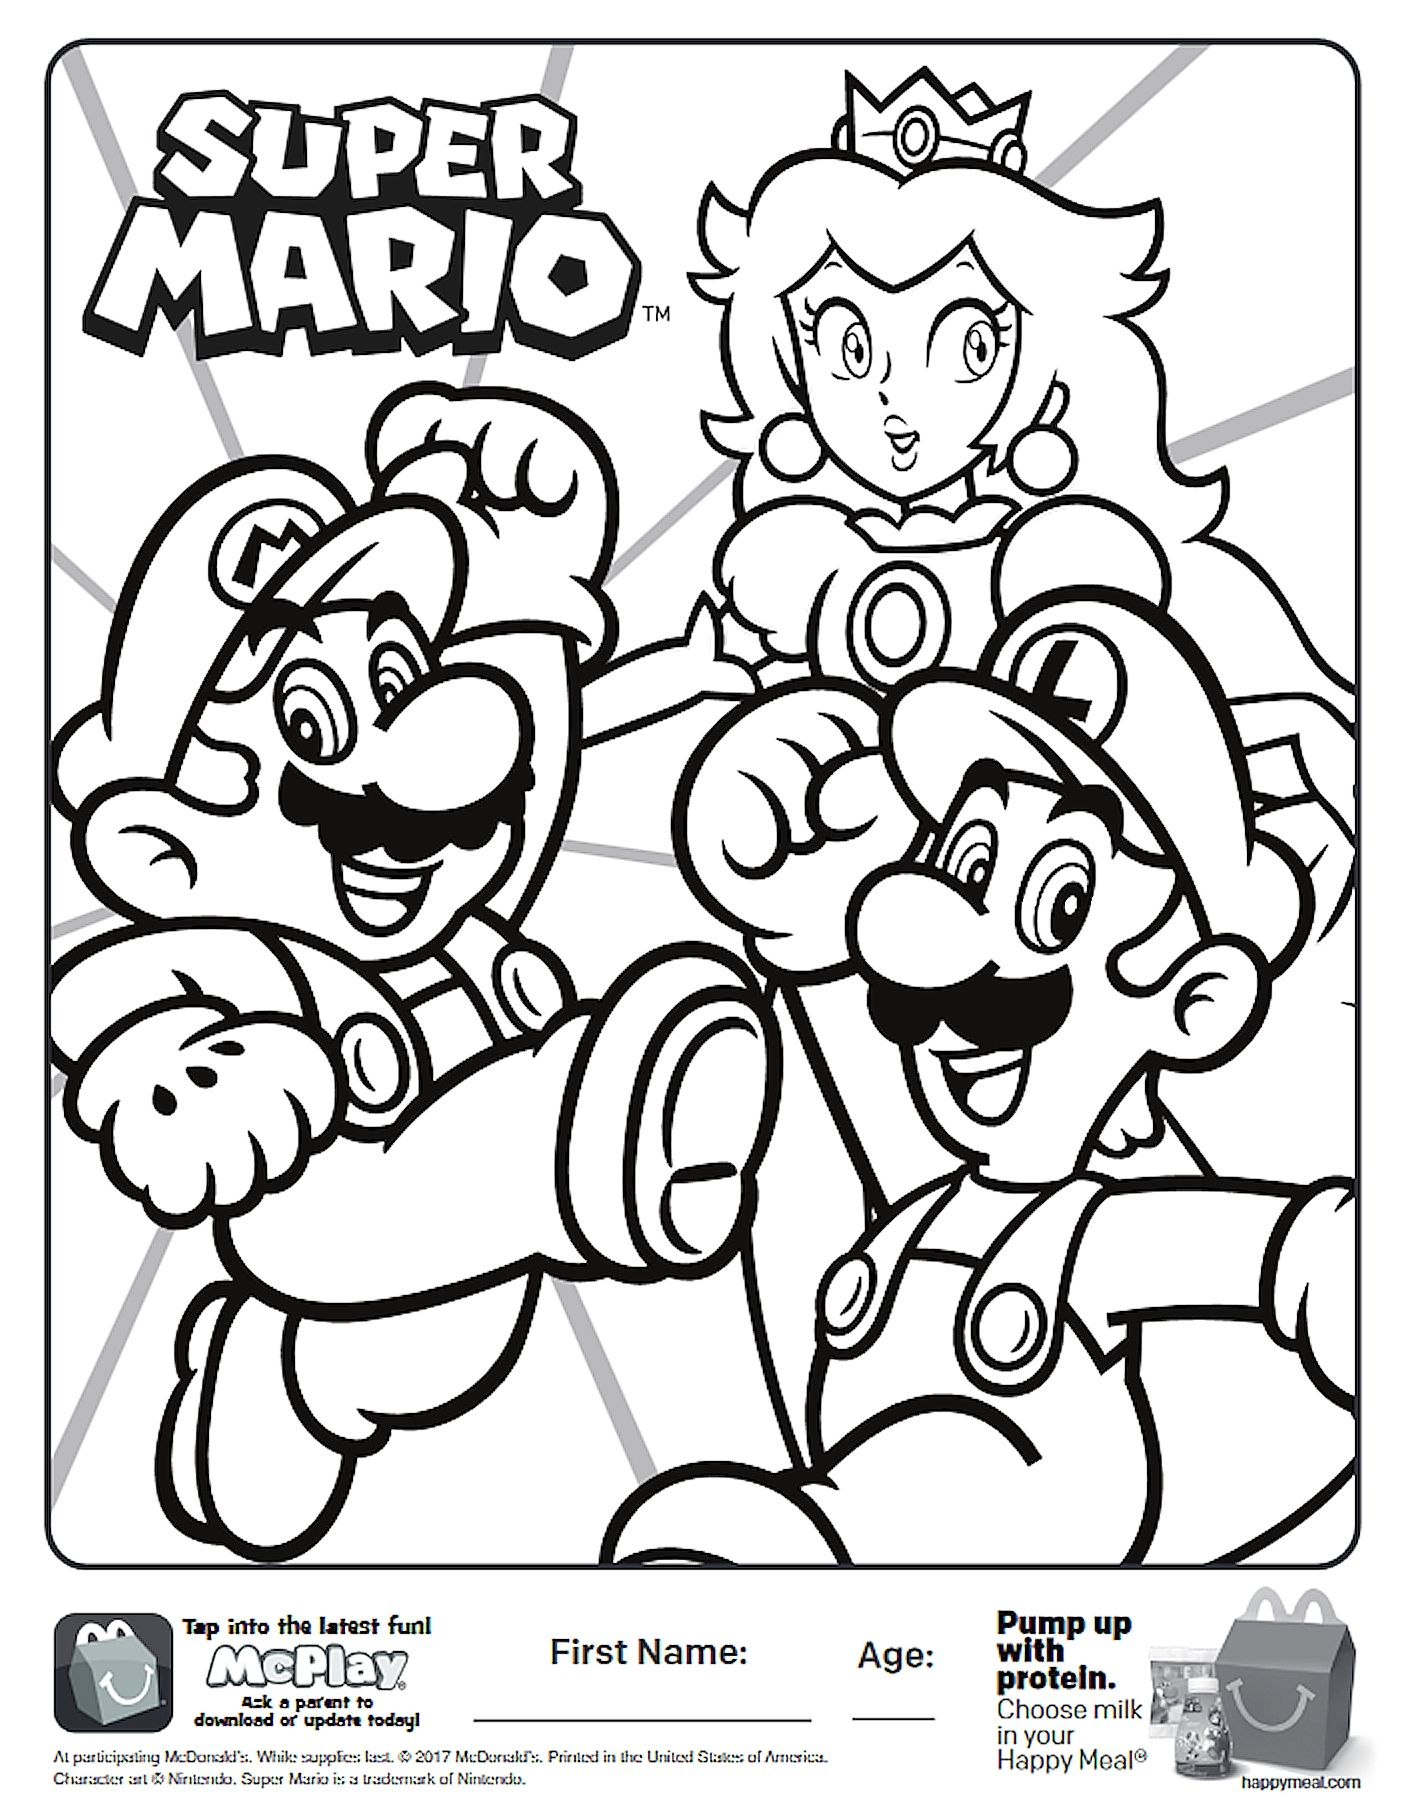 Here Is The Happy Meal Super Mario Coloring Page Click The Picture To See My Coloring Super Mario Coloring Pages Mario Coloring Pages Avengers Coloring Pages